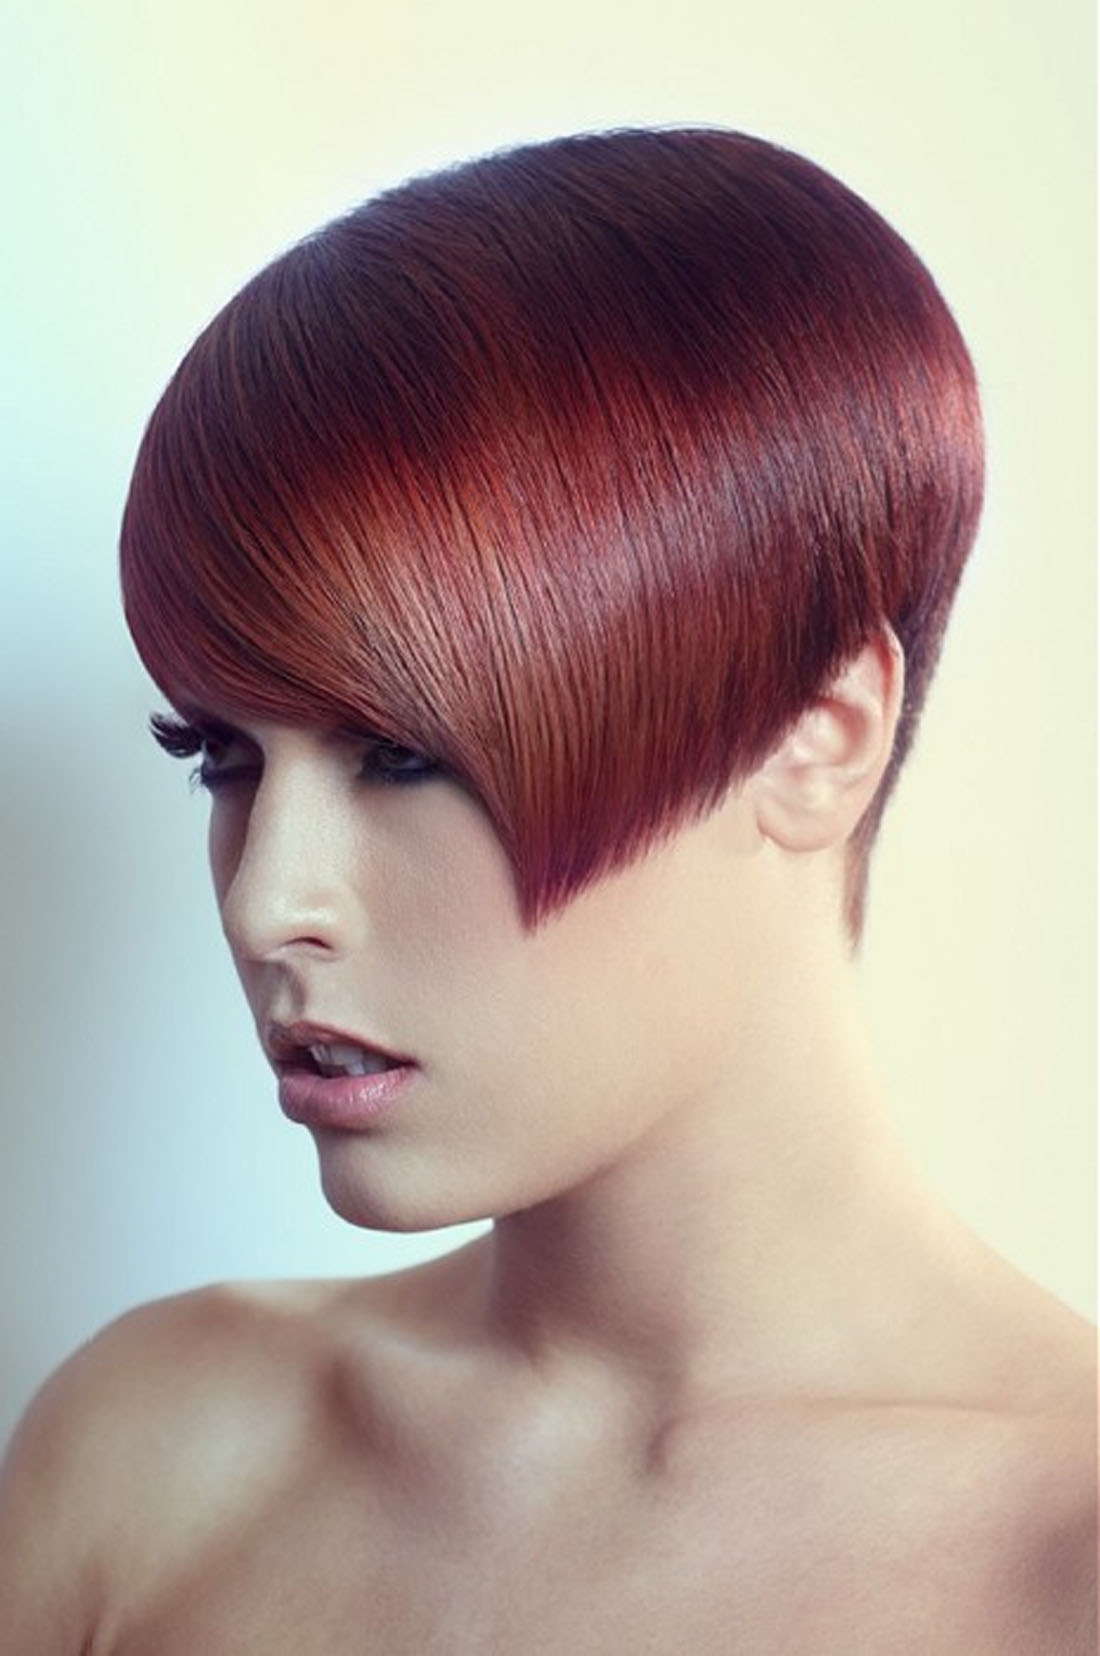 hair color styles short hair capelli corti guida alla scelta colore migliore 1364 | hairstyles as 2012 hair trend red hair color hair as very short hair 1100x1656